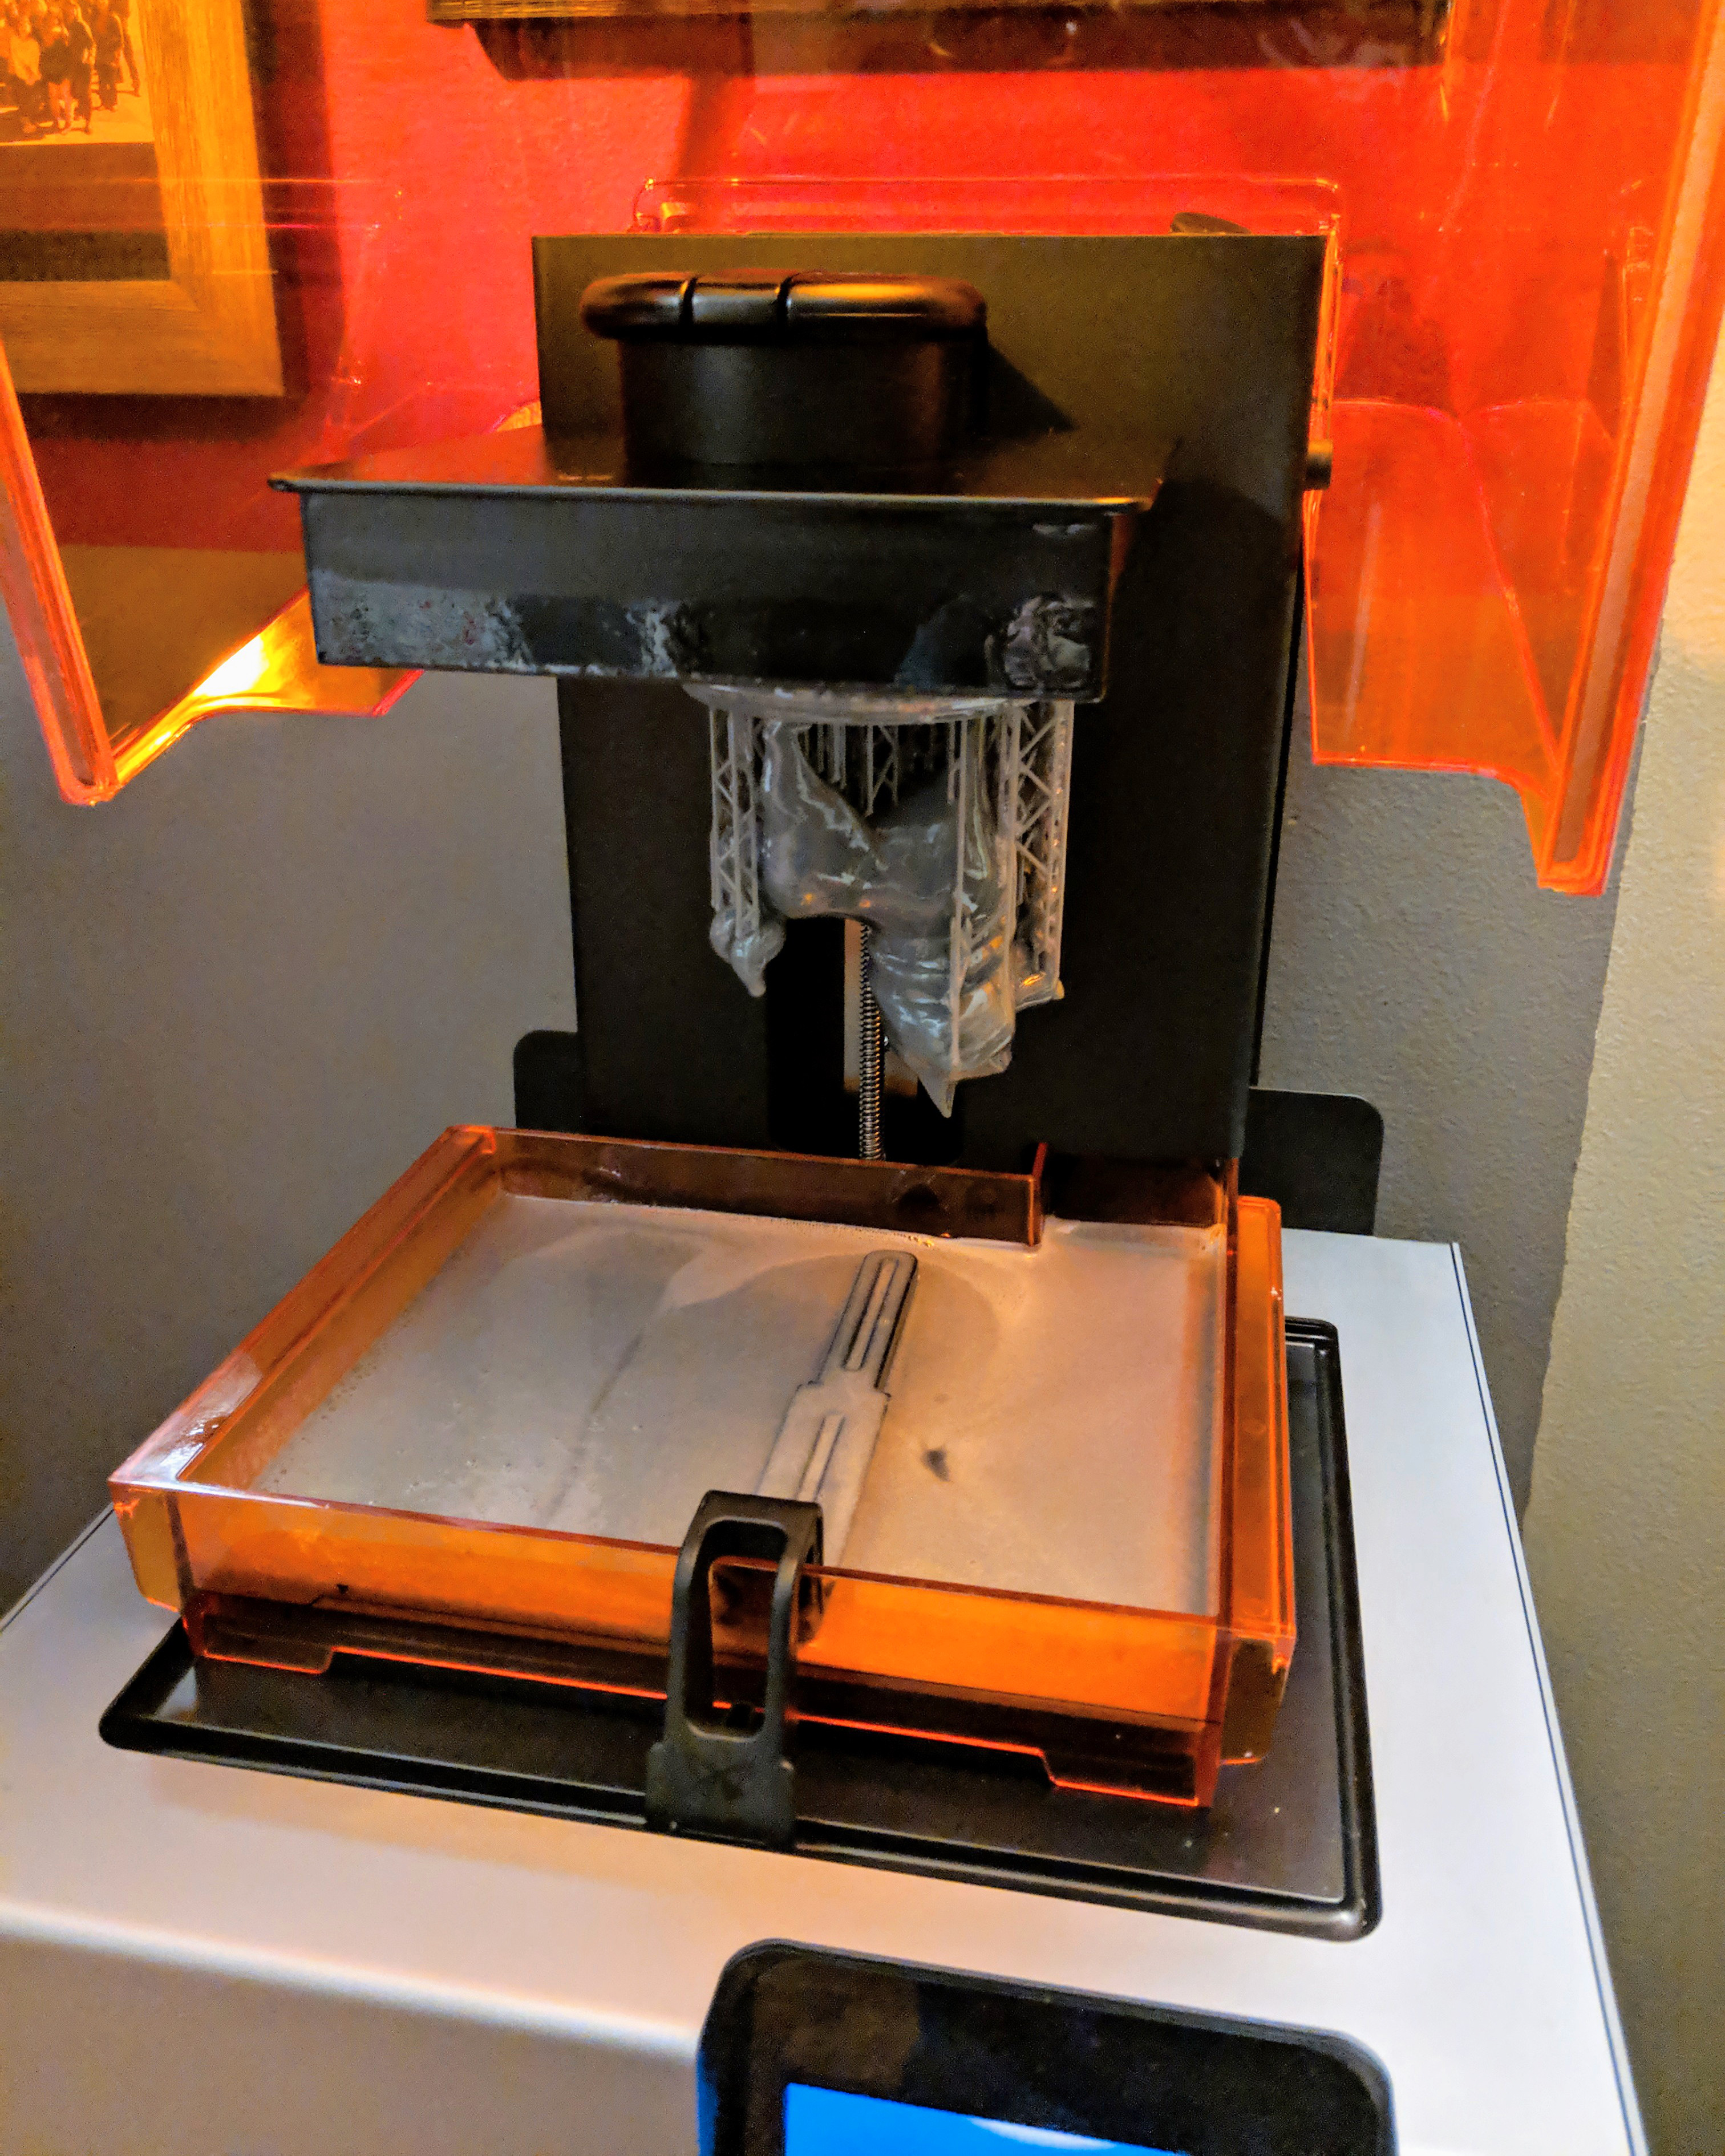 Printing on the Formlabs Form 2